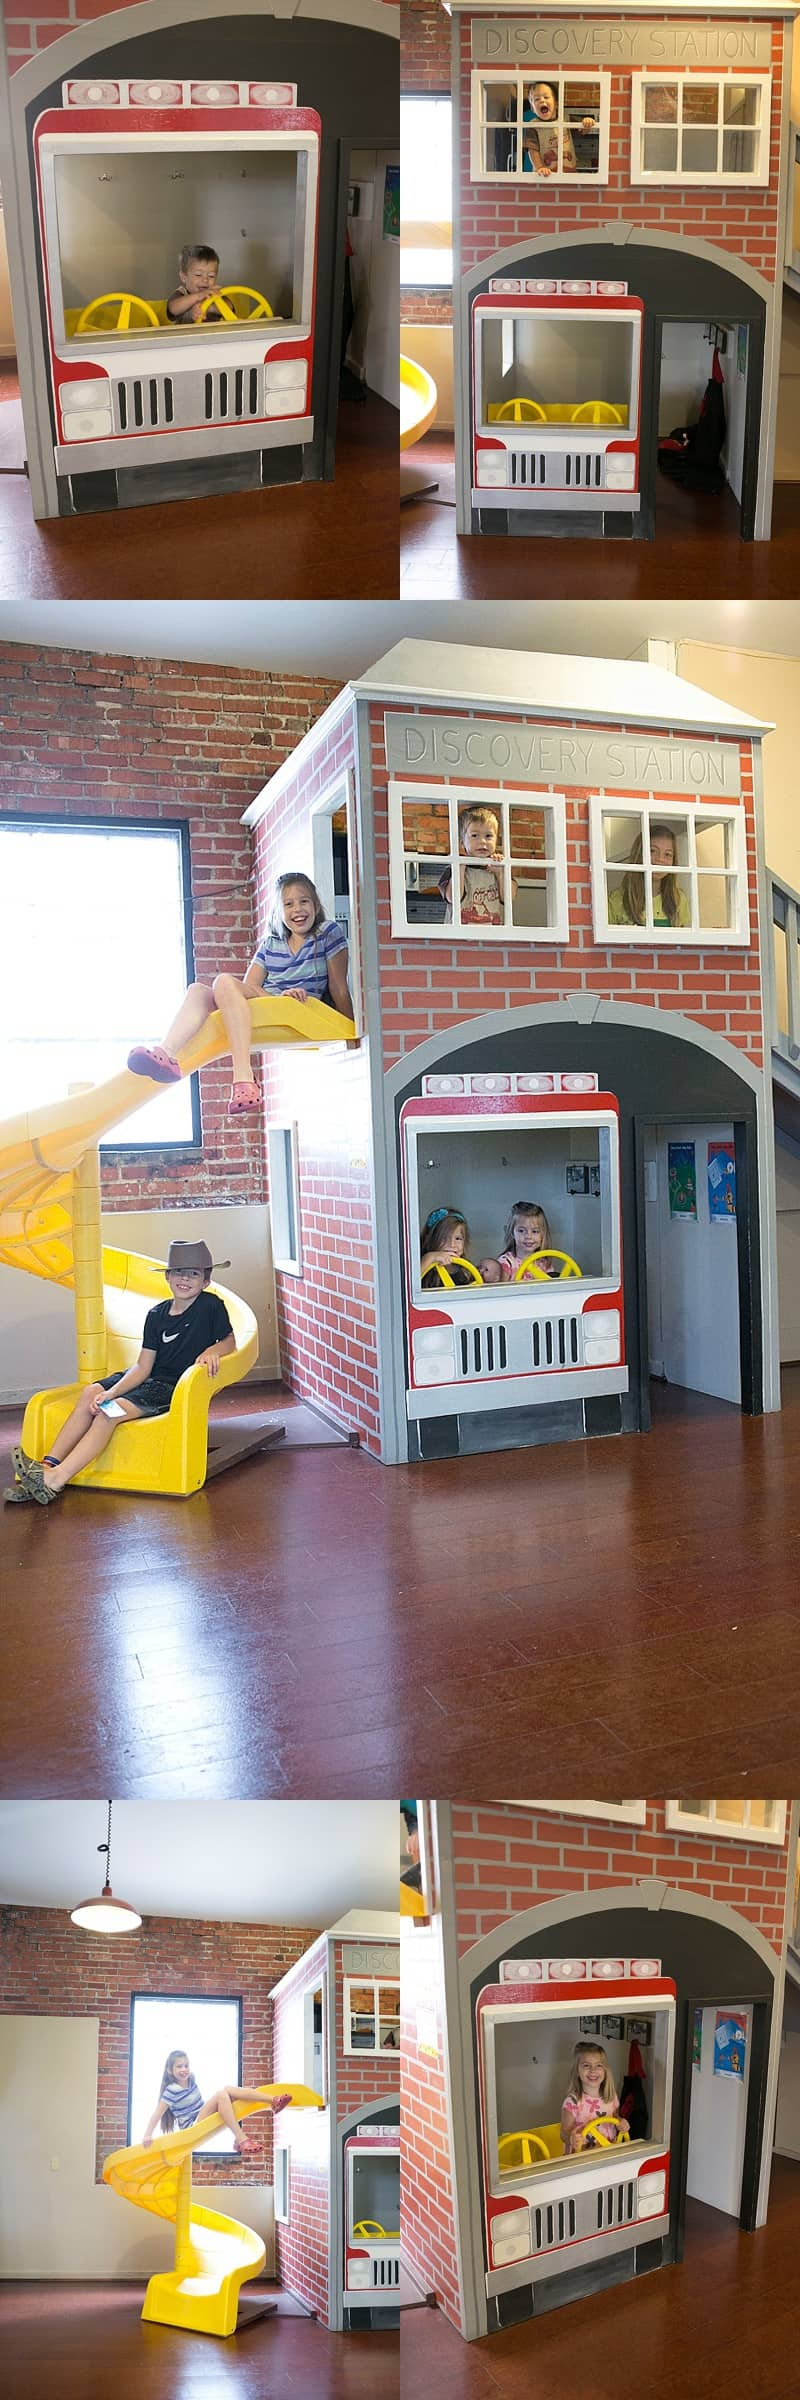 Charlottesville Discovery Children's Museum